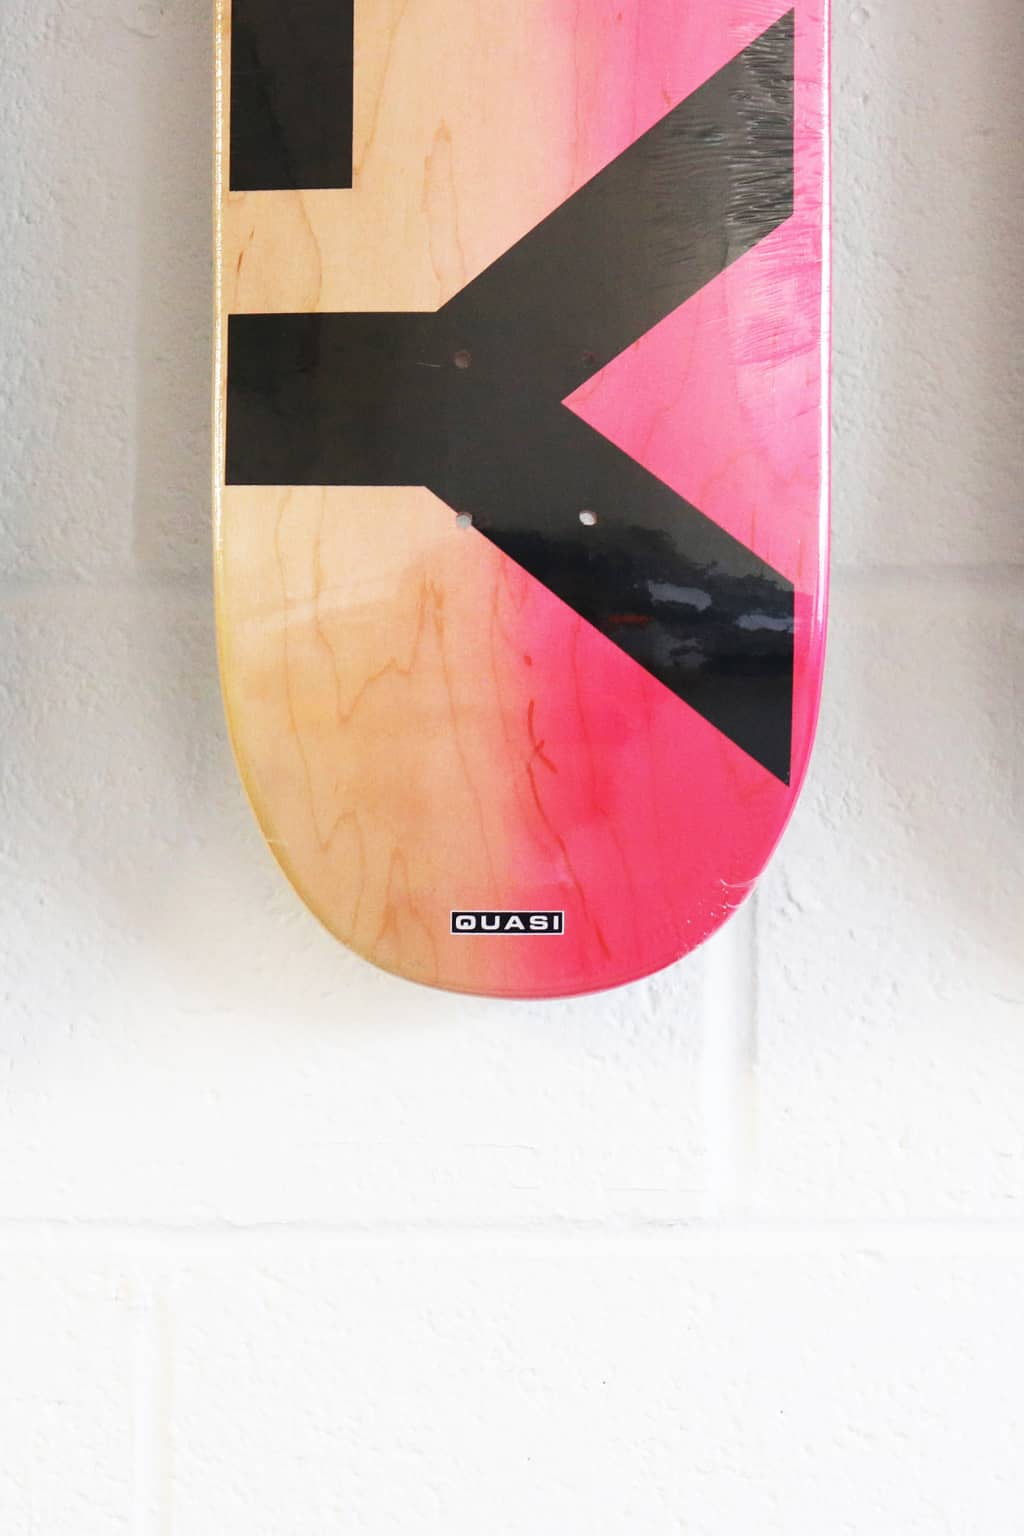 New In: Quasi Skateboards